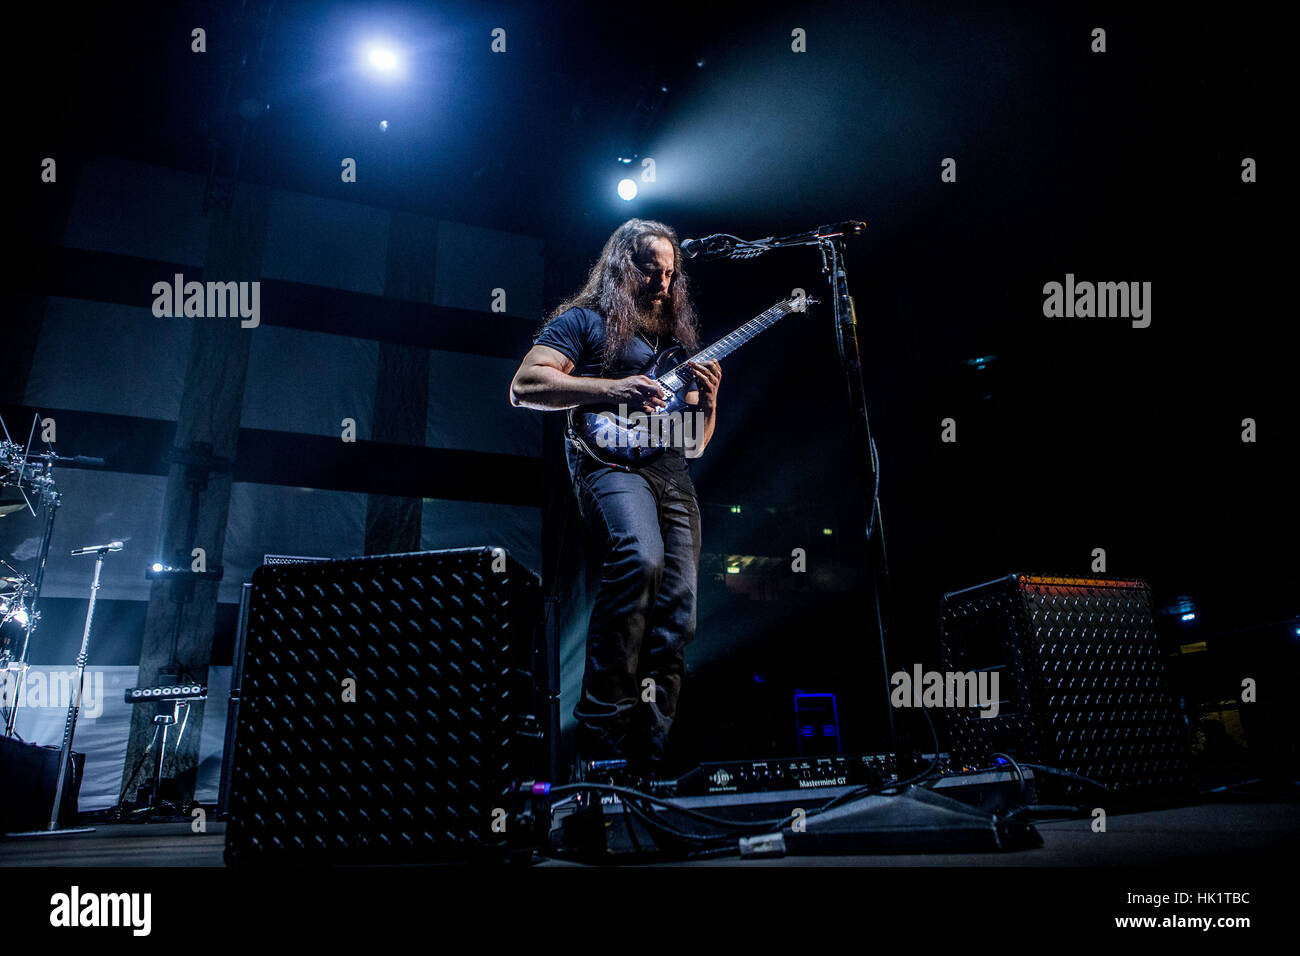 Milan, Italy. 4th Feb, 2017. Progressive metal band Dream Theater performs live at Mediolanum Forum in Milan, Italy. - Stock Image